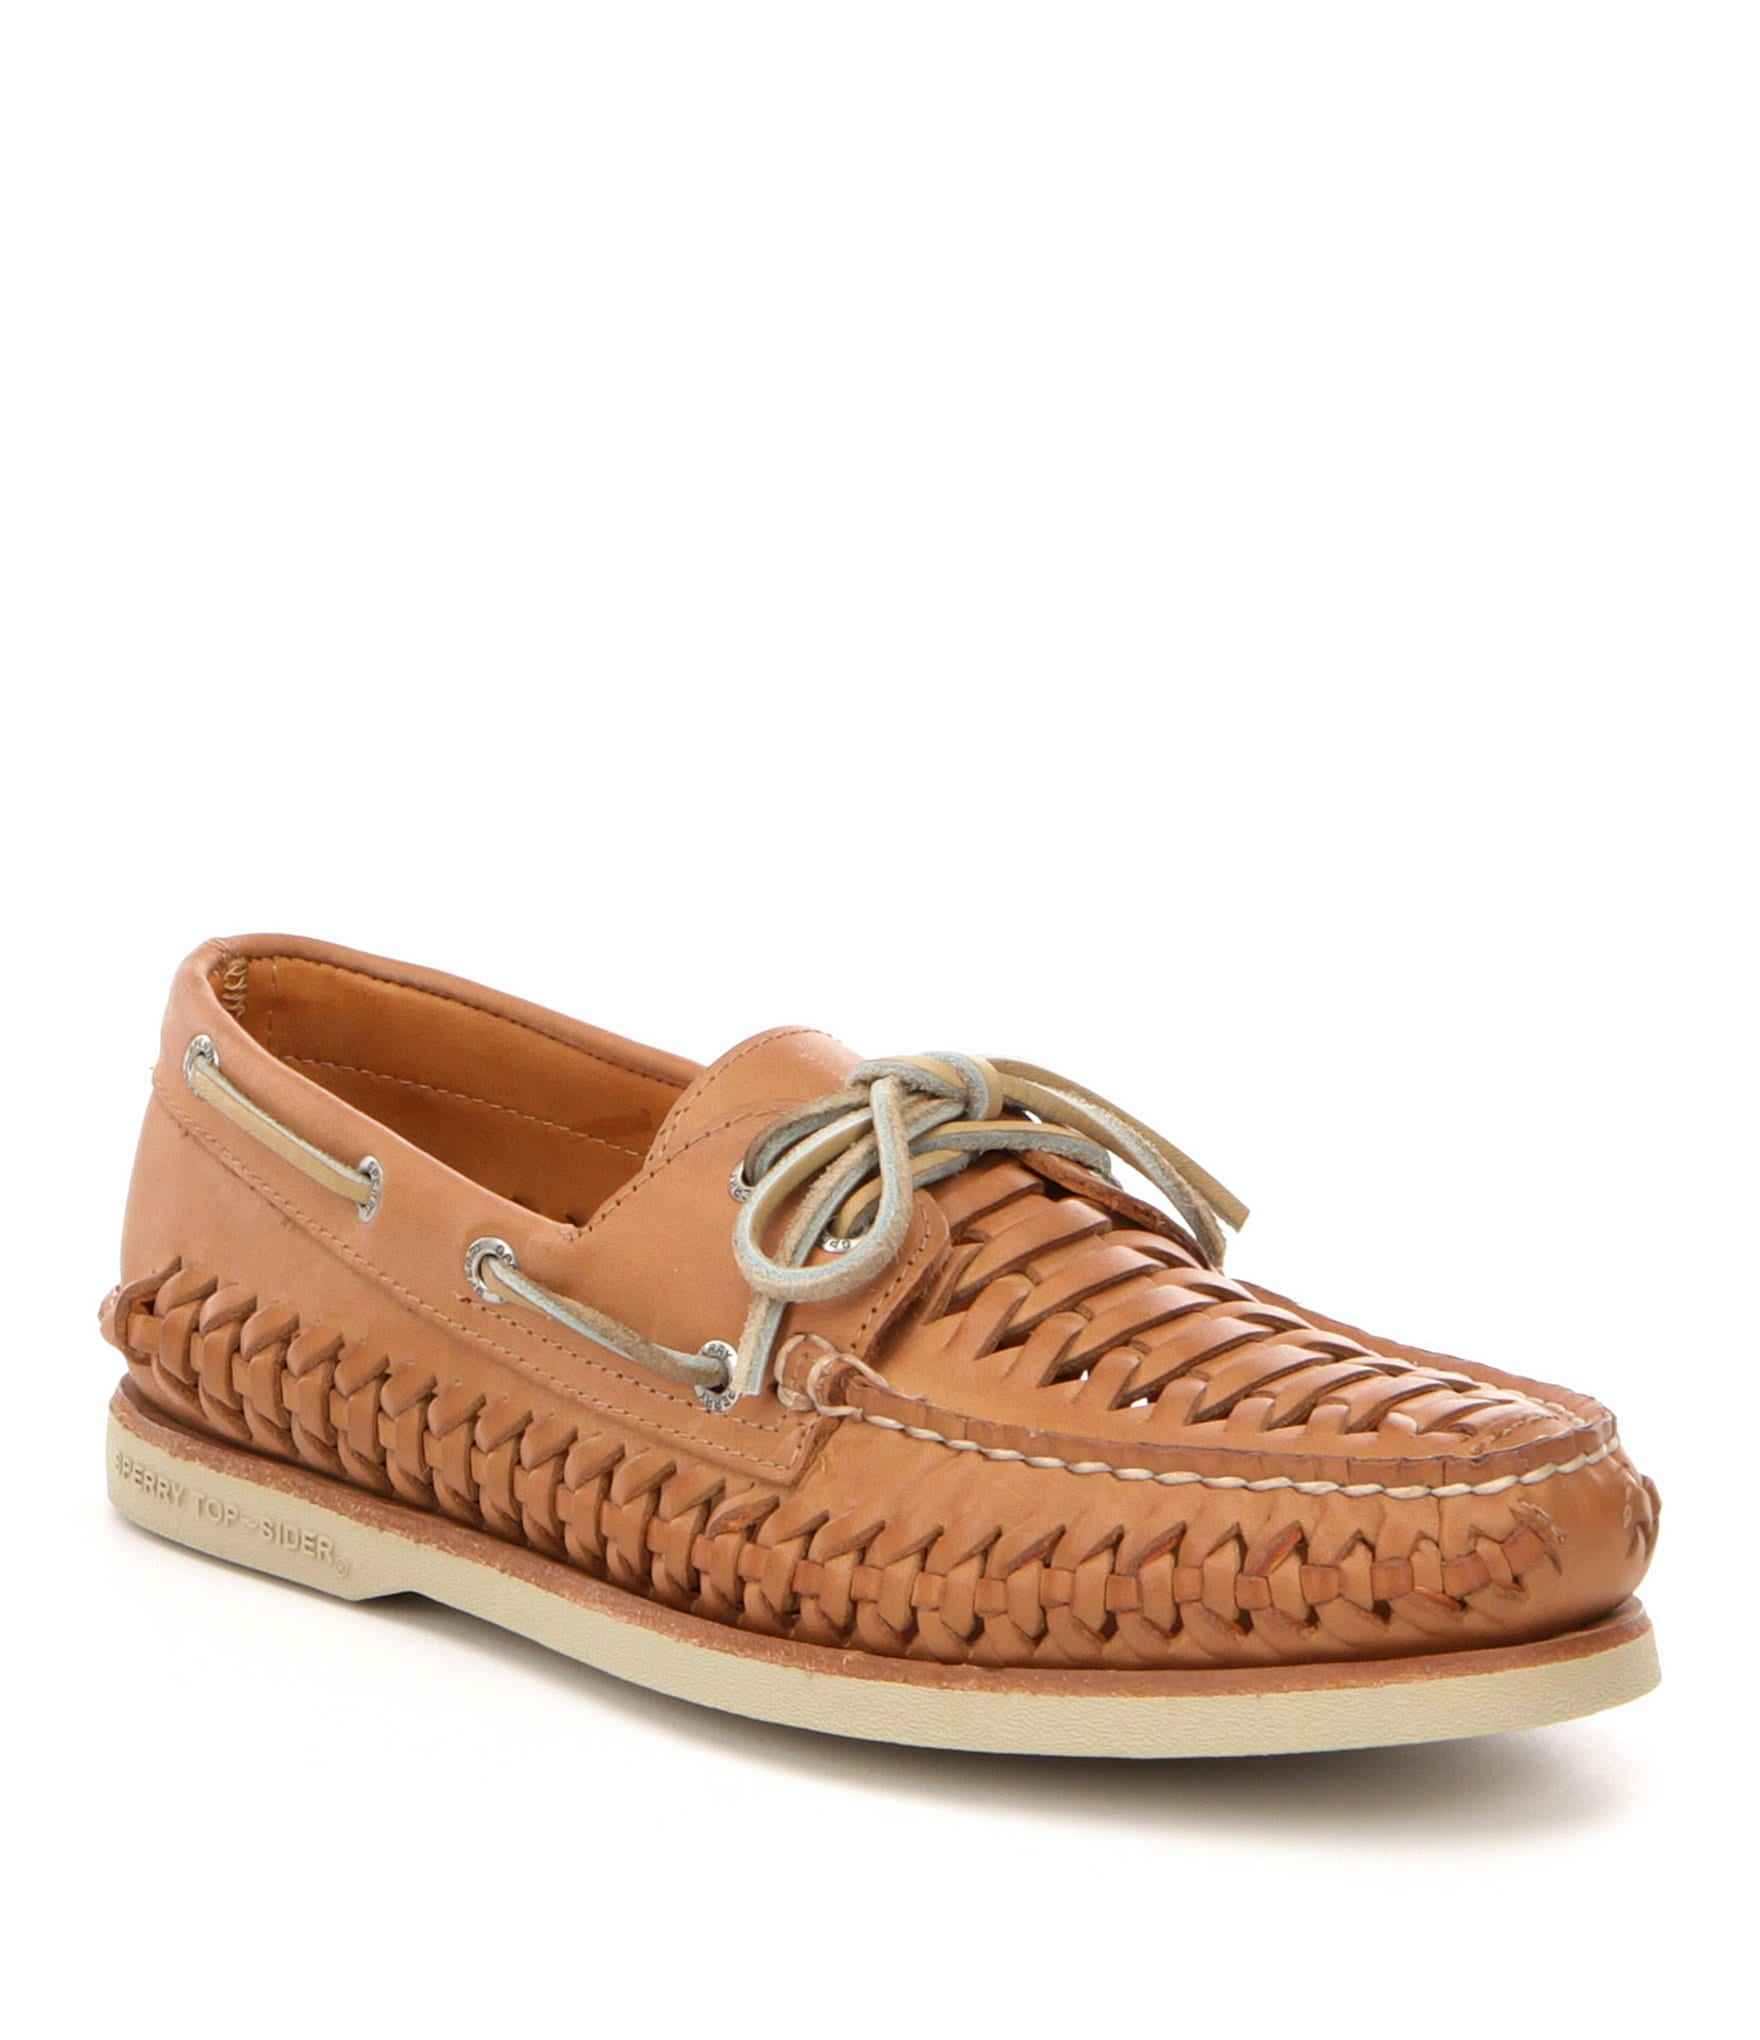 Sperry Boat Shoes Women Review